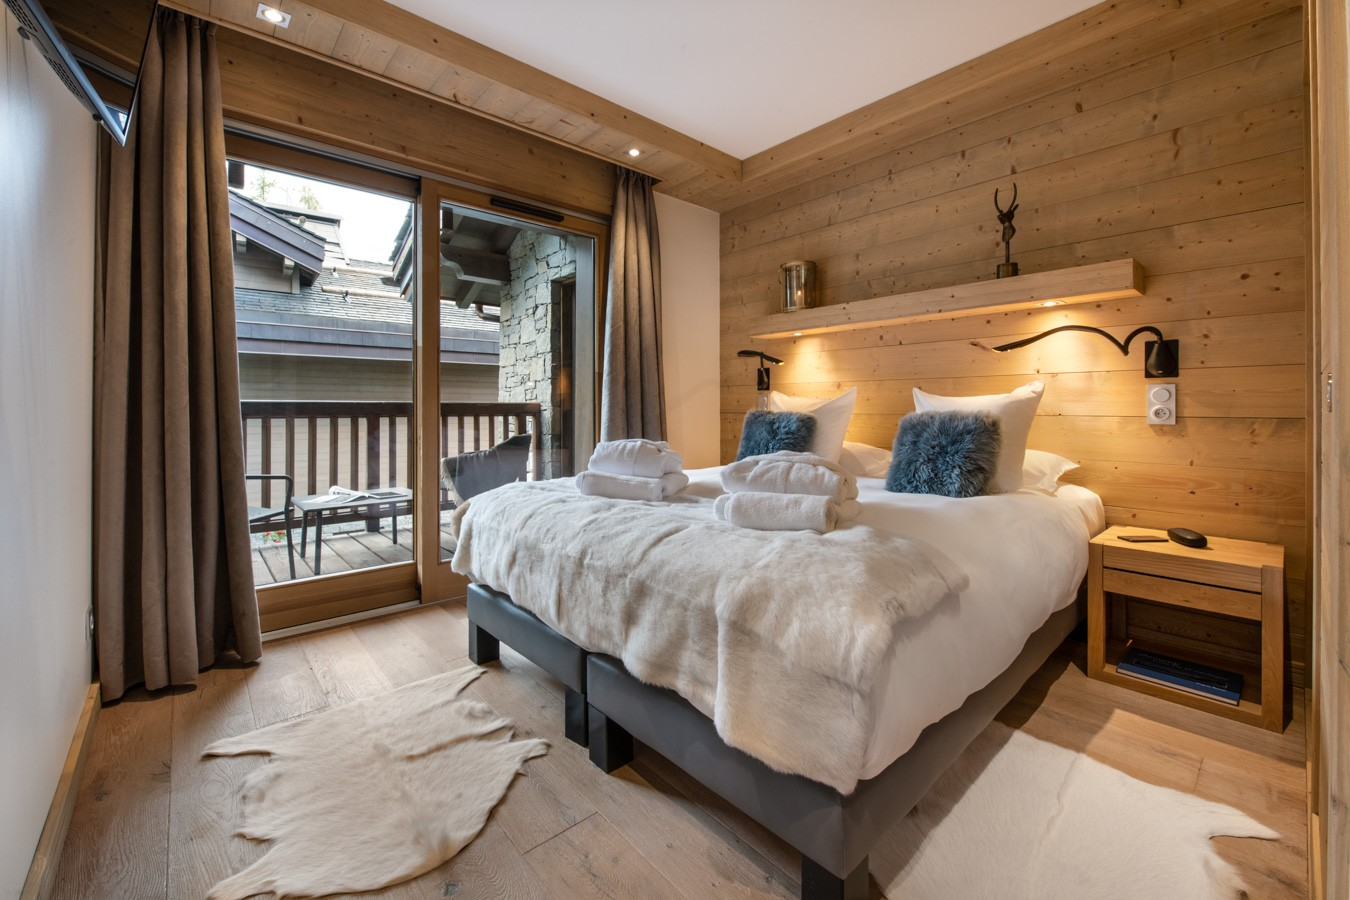 Courchevel 1650 Location Appartement Luxe Amethyste Chambre